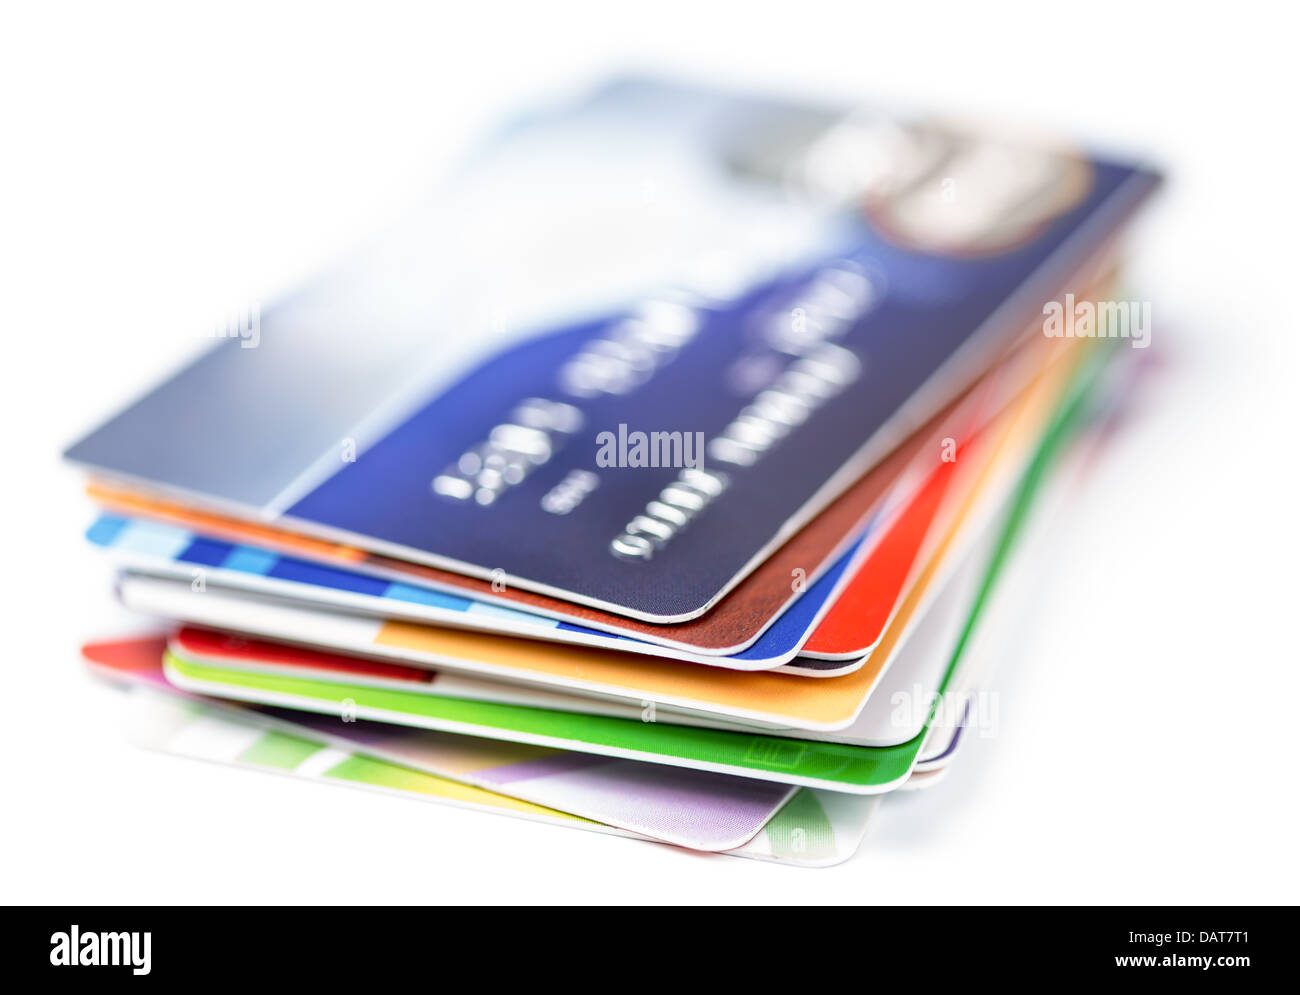 credit cards stack on white - Stock Image